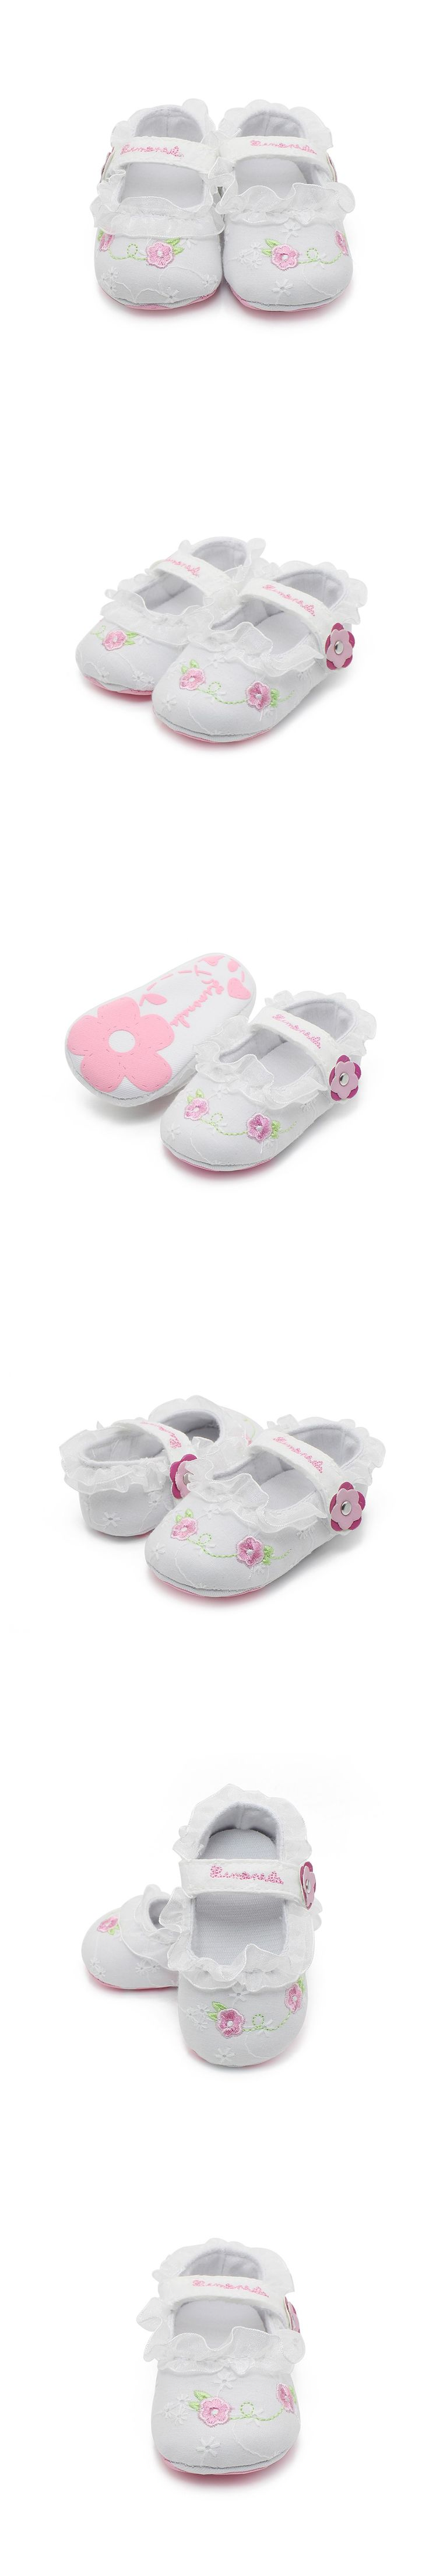 The Pink Embroidery Baby Shoes Brand Of Delebao Design Style Hot Sale Newborn Baby Girl Shoes High Quality First Walkers